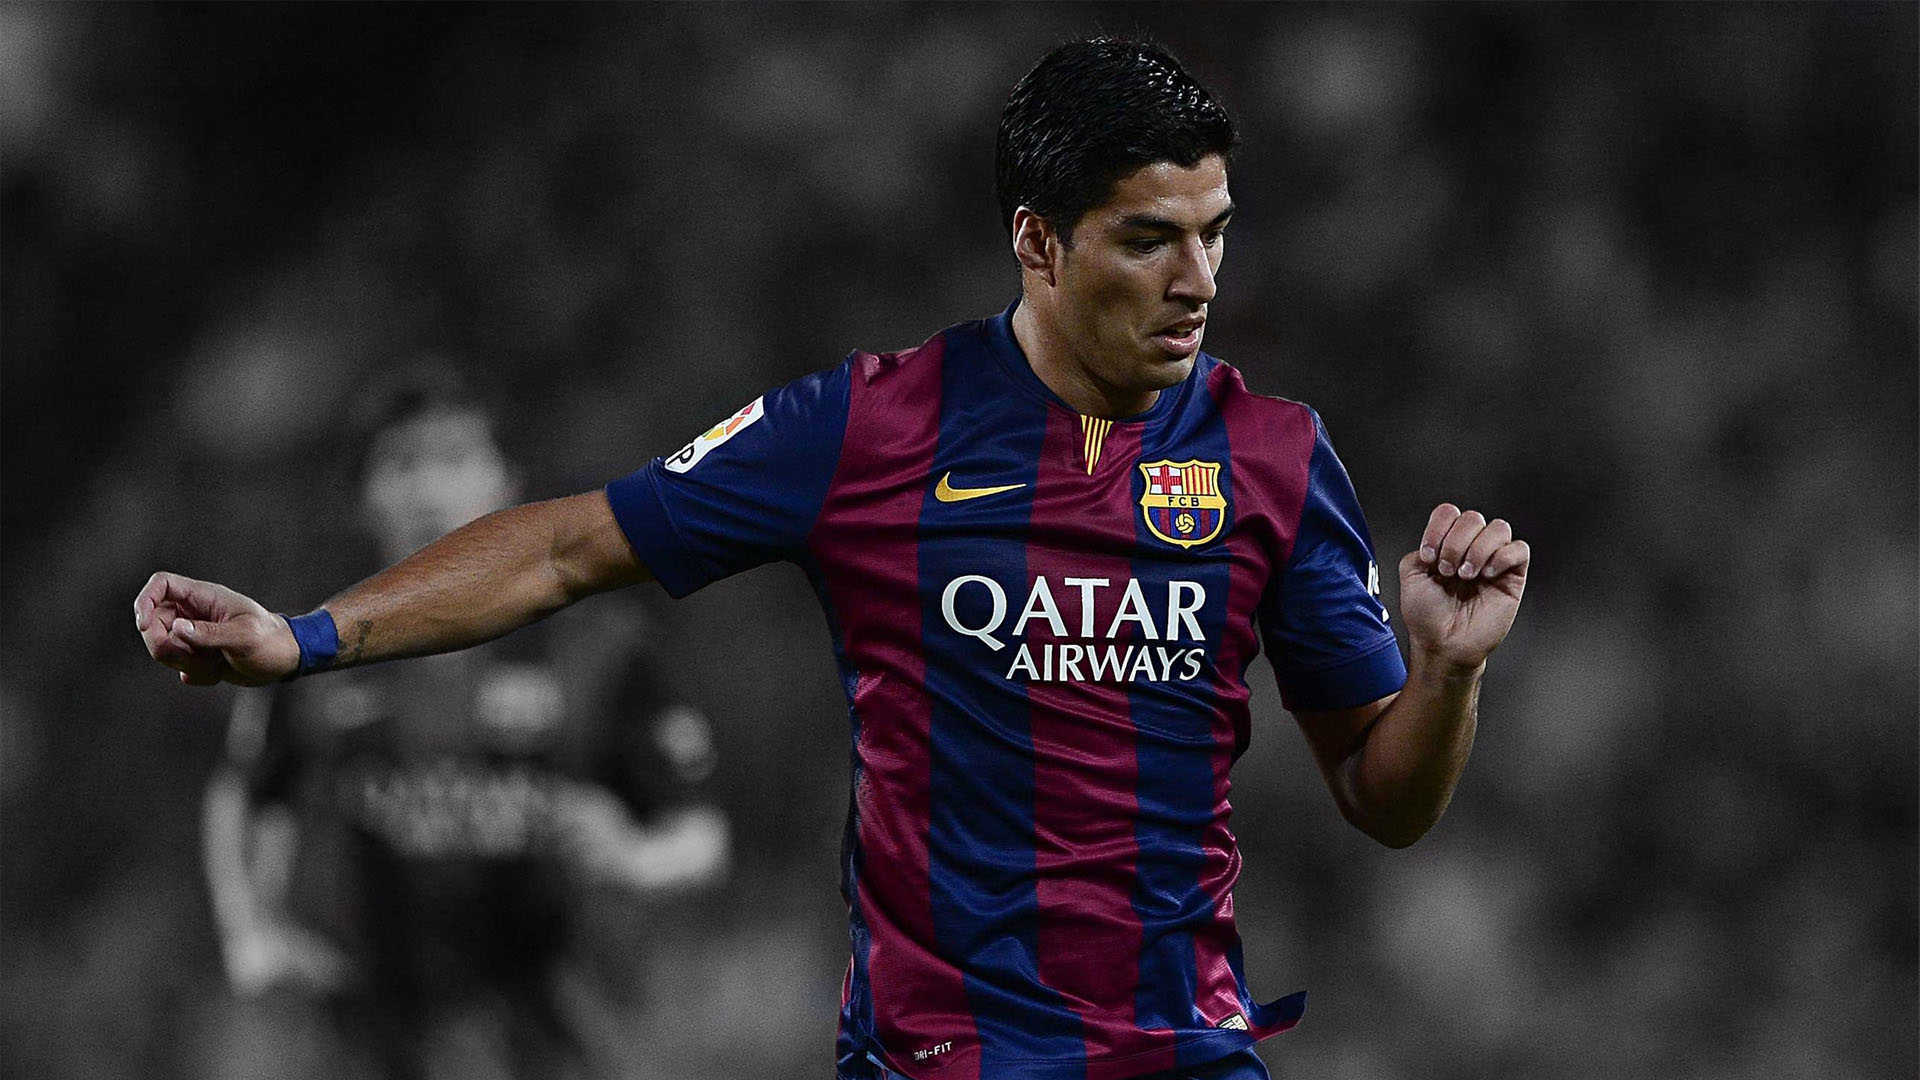 Luis Suarez Wallpapers Pictures Images 1920x1080